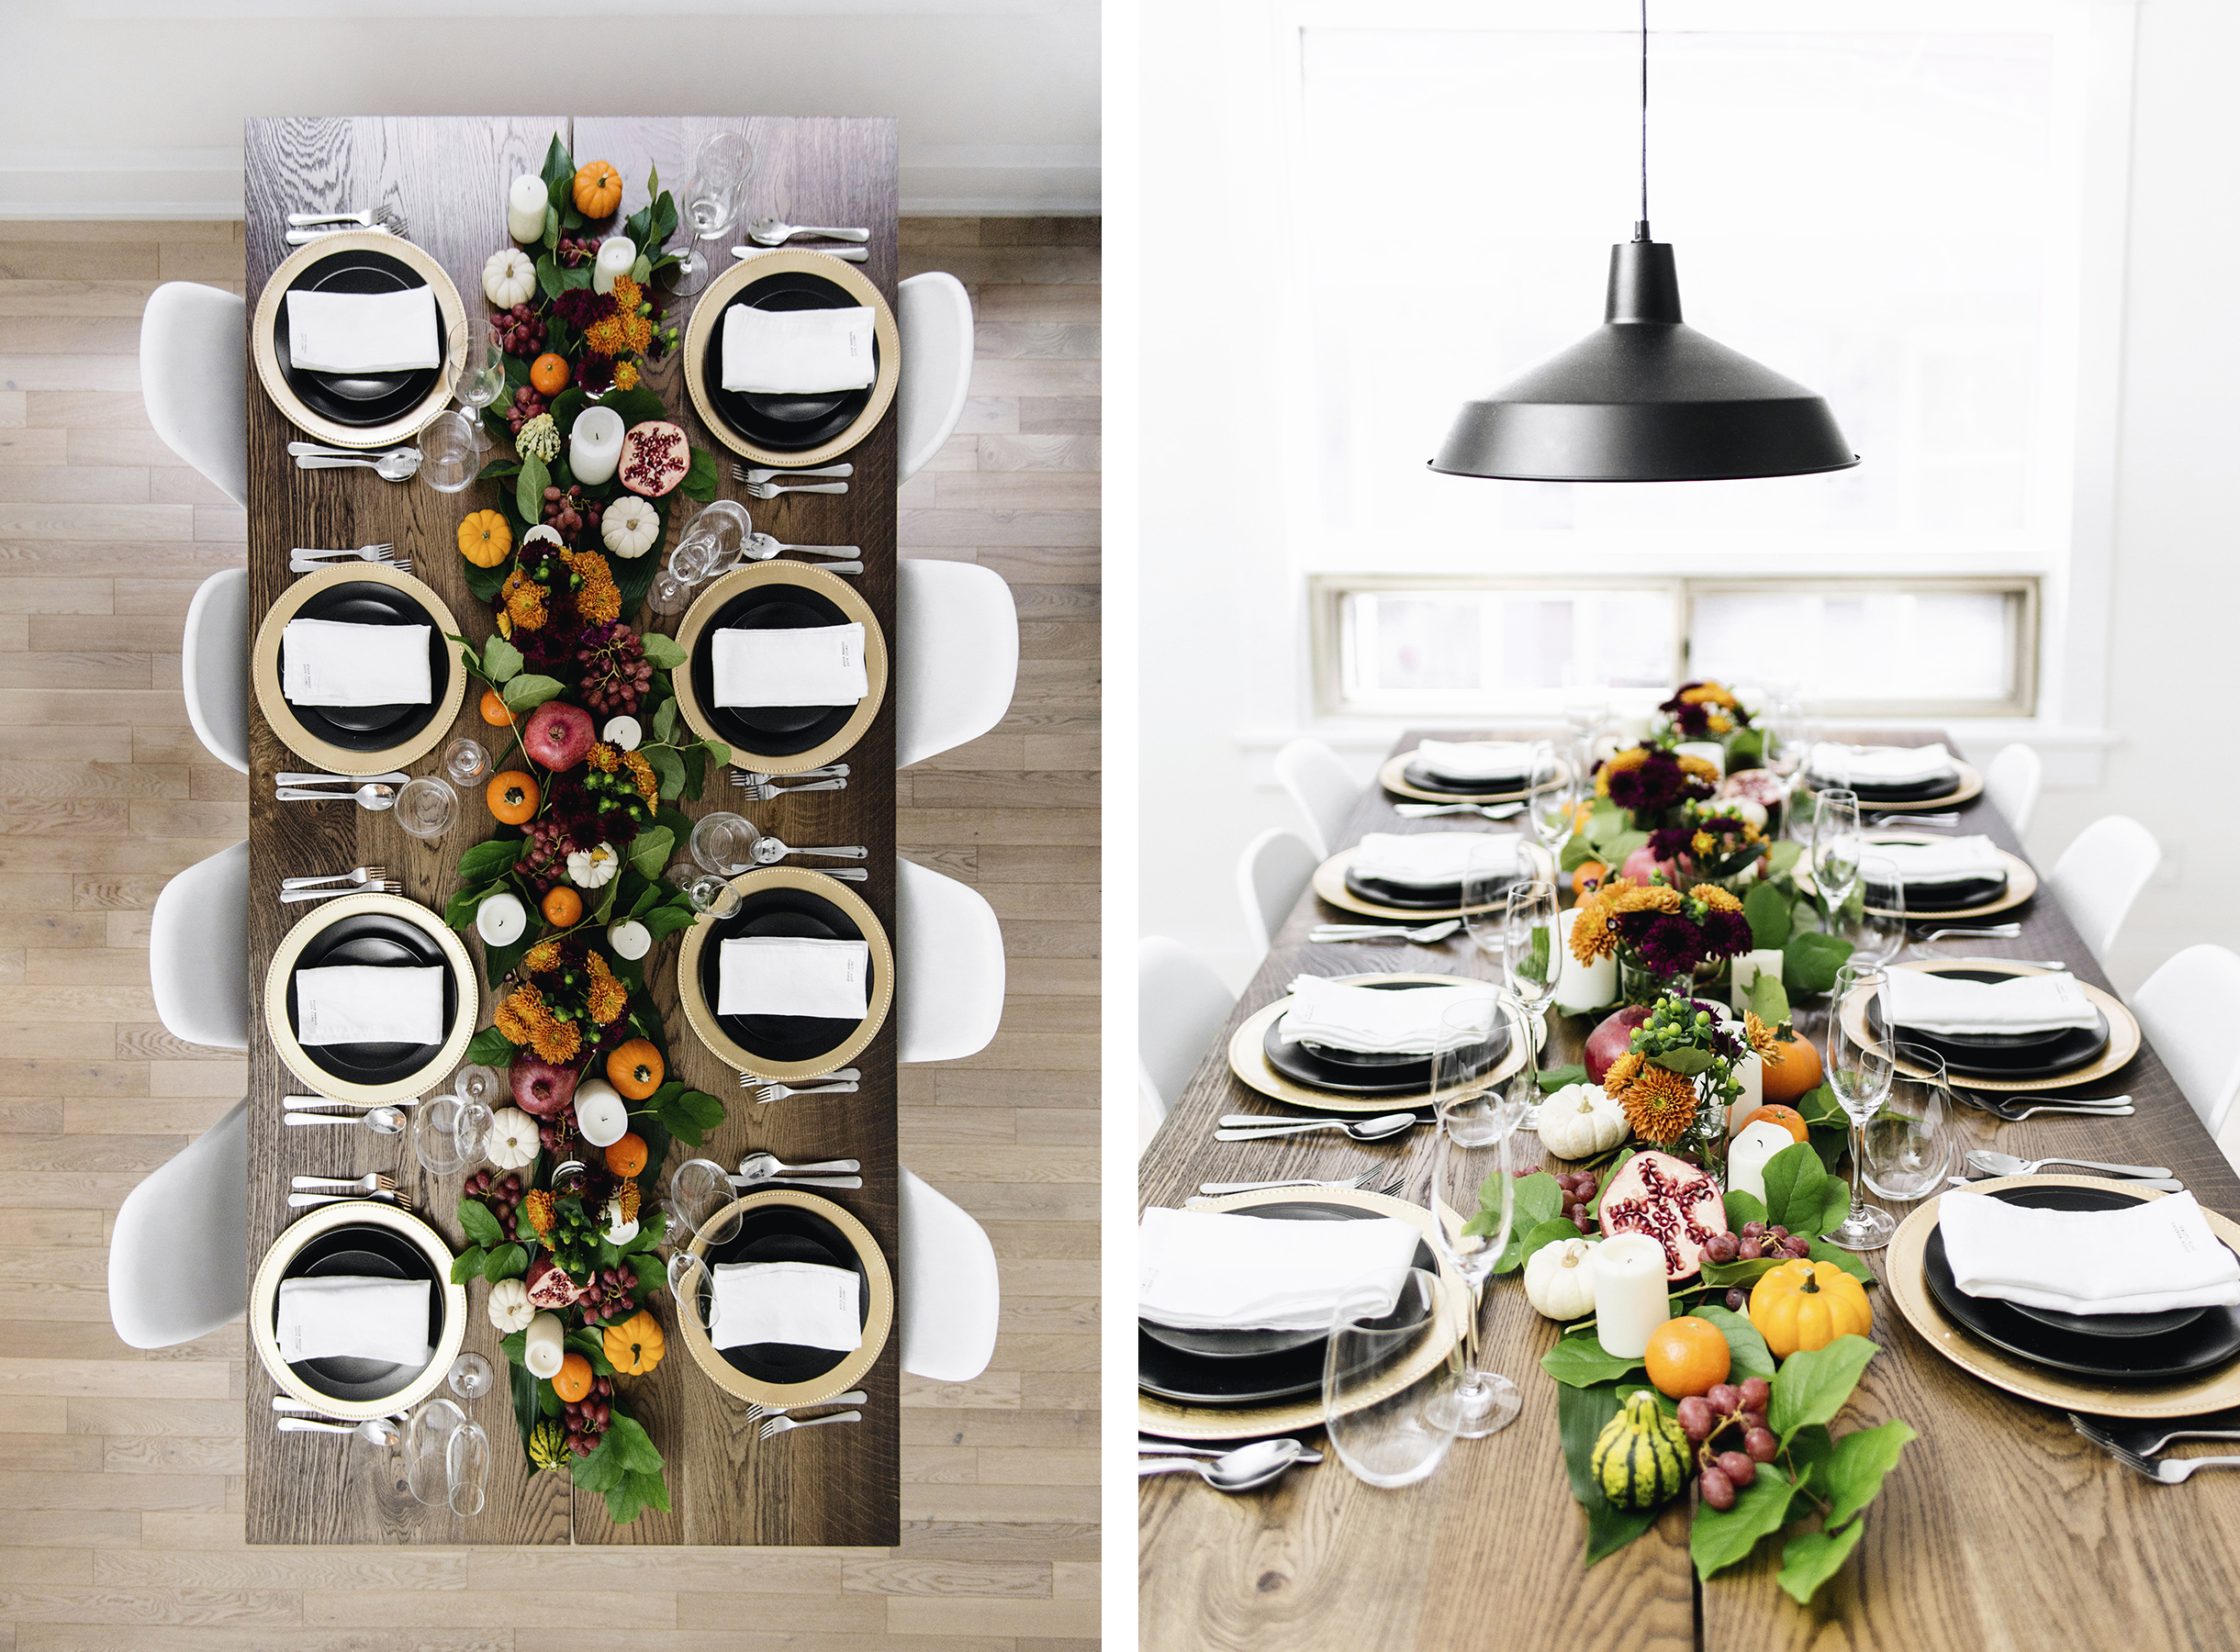 Fall & thanksgiving tablescape, festive colors - orange, burgundy + green | Happy Grey Lucky